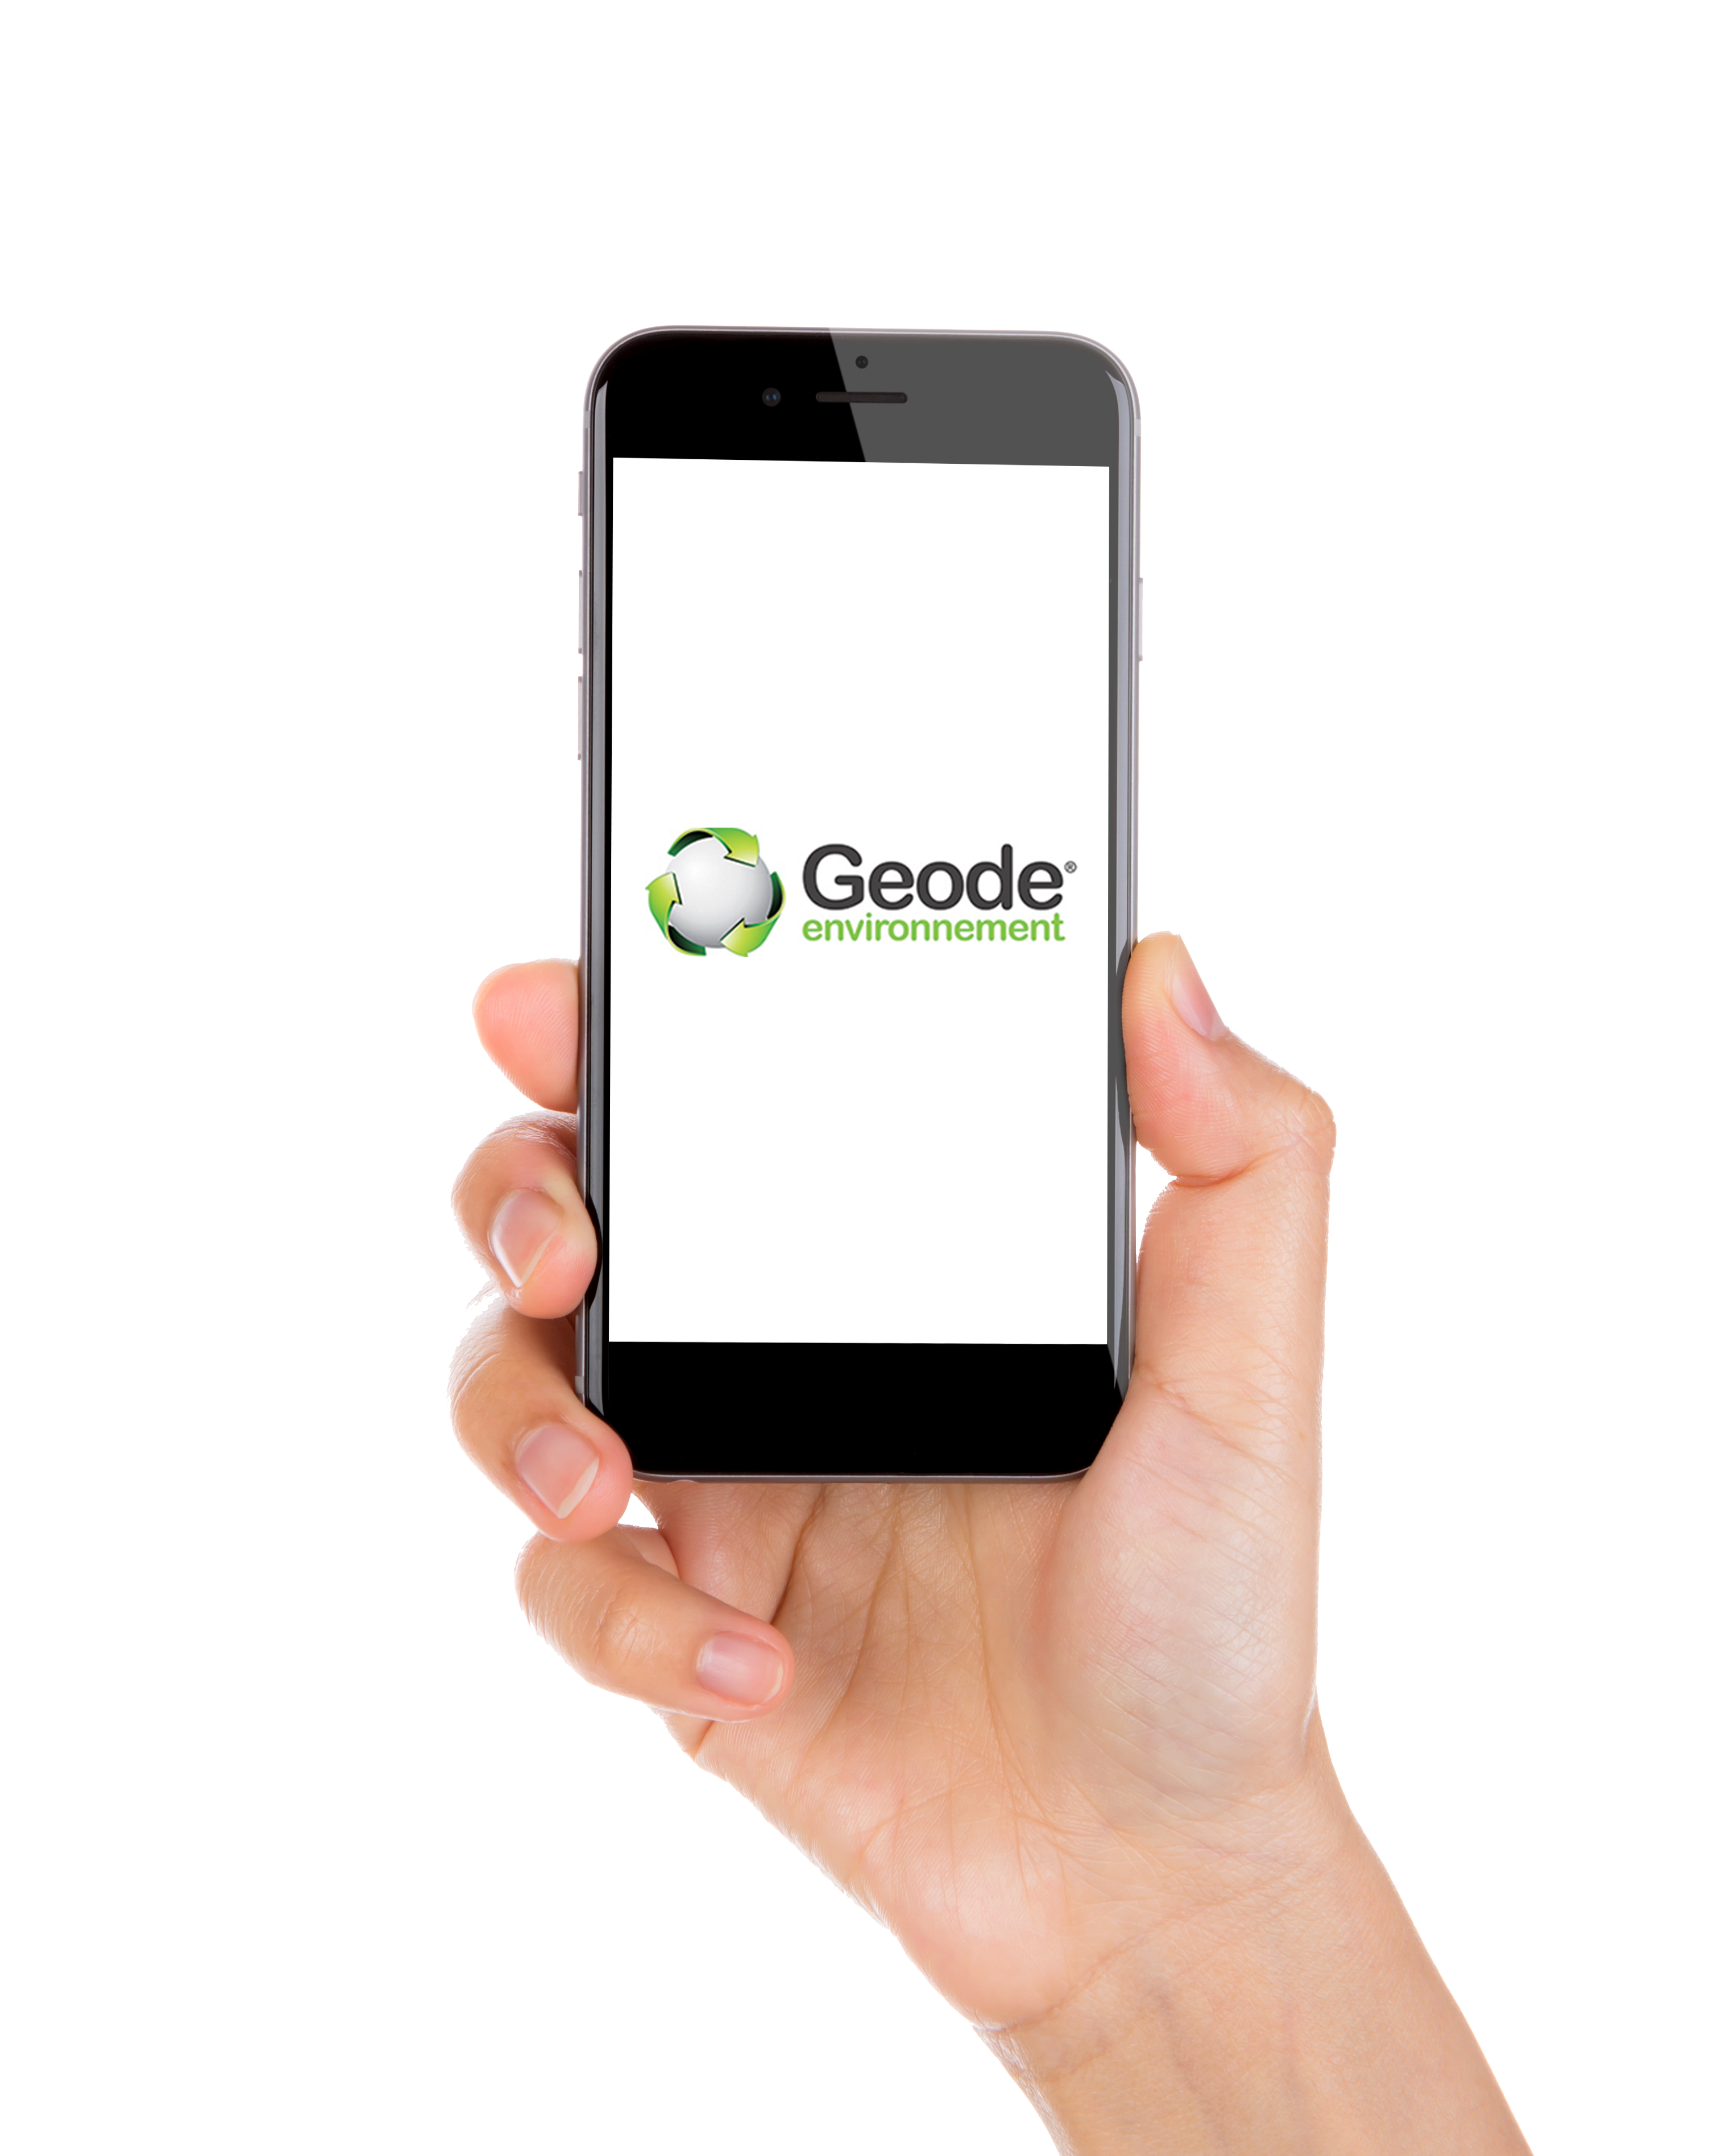 Application mobile Geode environnement